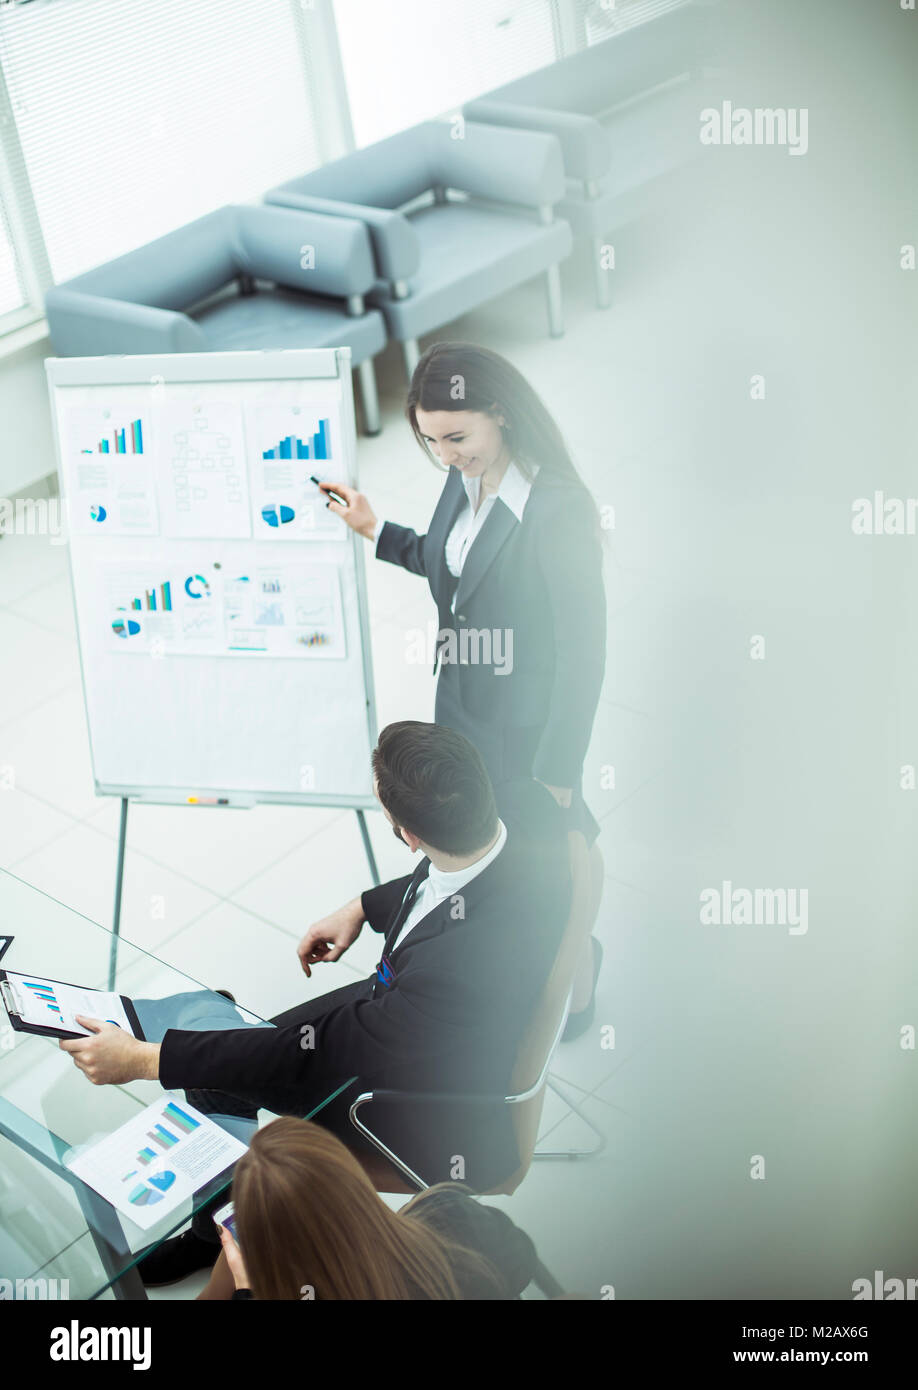 members of a business team discussing the presentation of a new financial project. - Stock Image